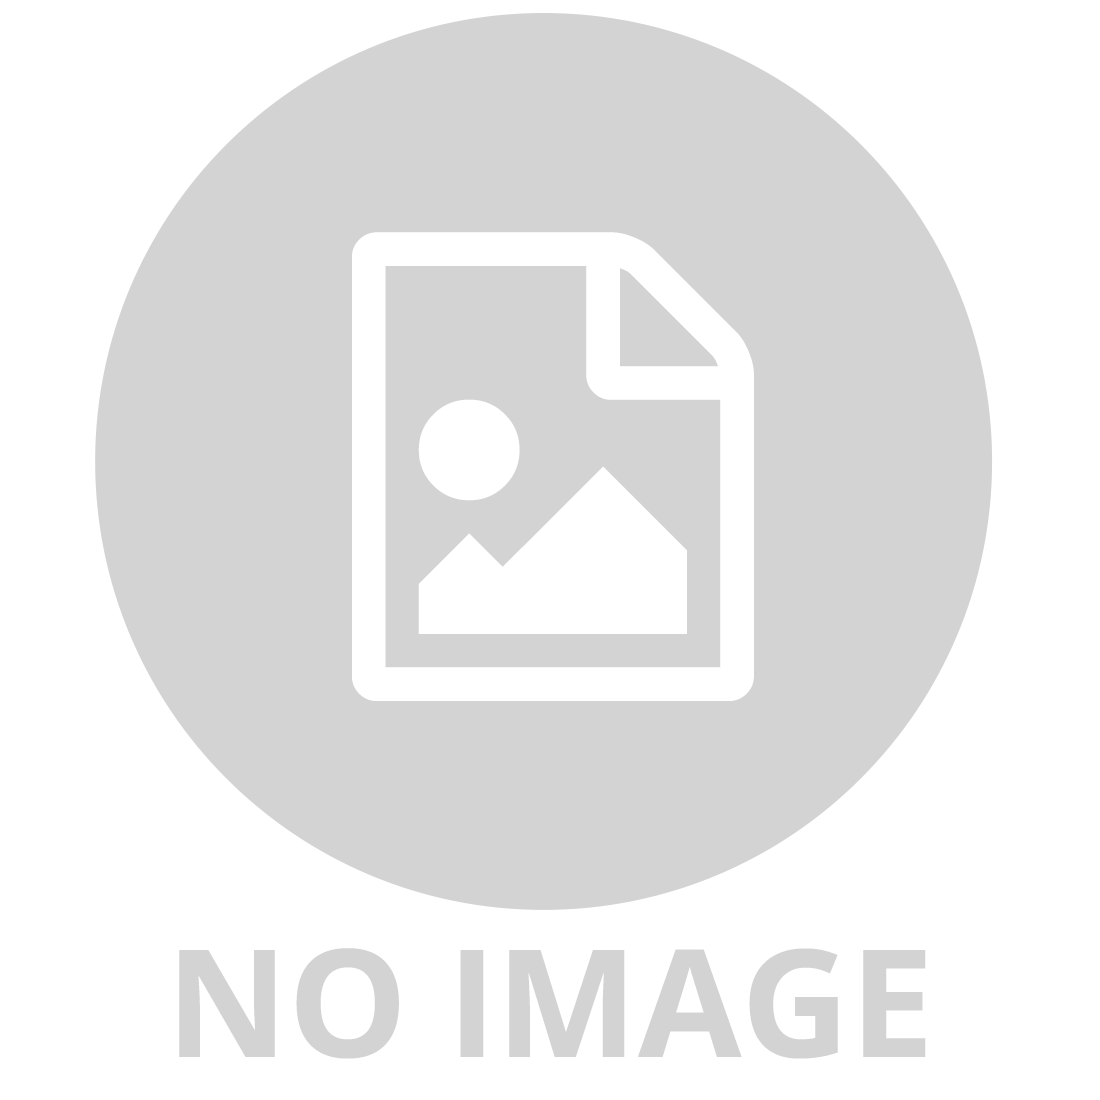 THATS LIFE THE GREAT BARRIER REEF 1000 PIECE PUZZLE